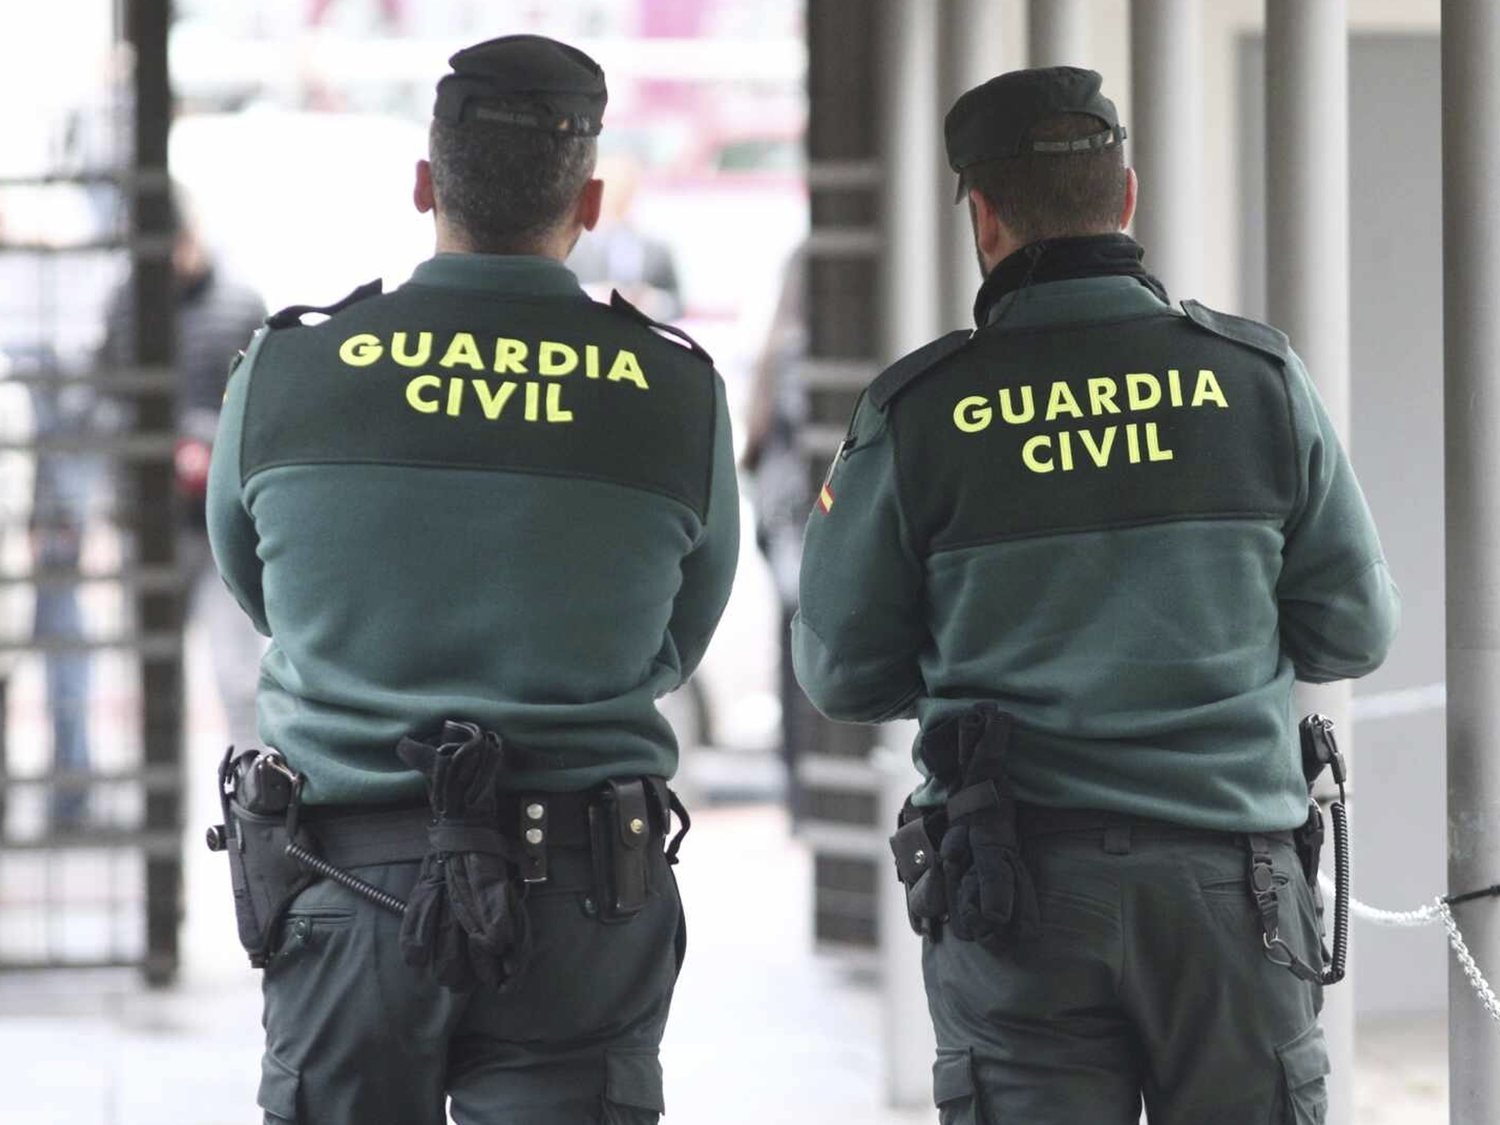 Llama a la Guardia Civil en plena borrachera para ser despedido y cobrar hasta jubilarse